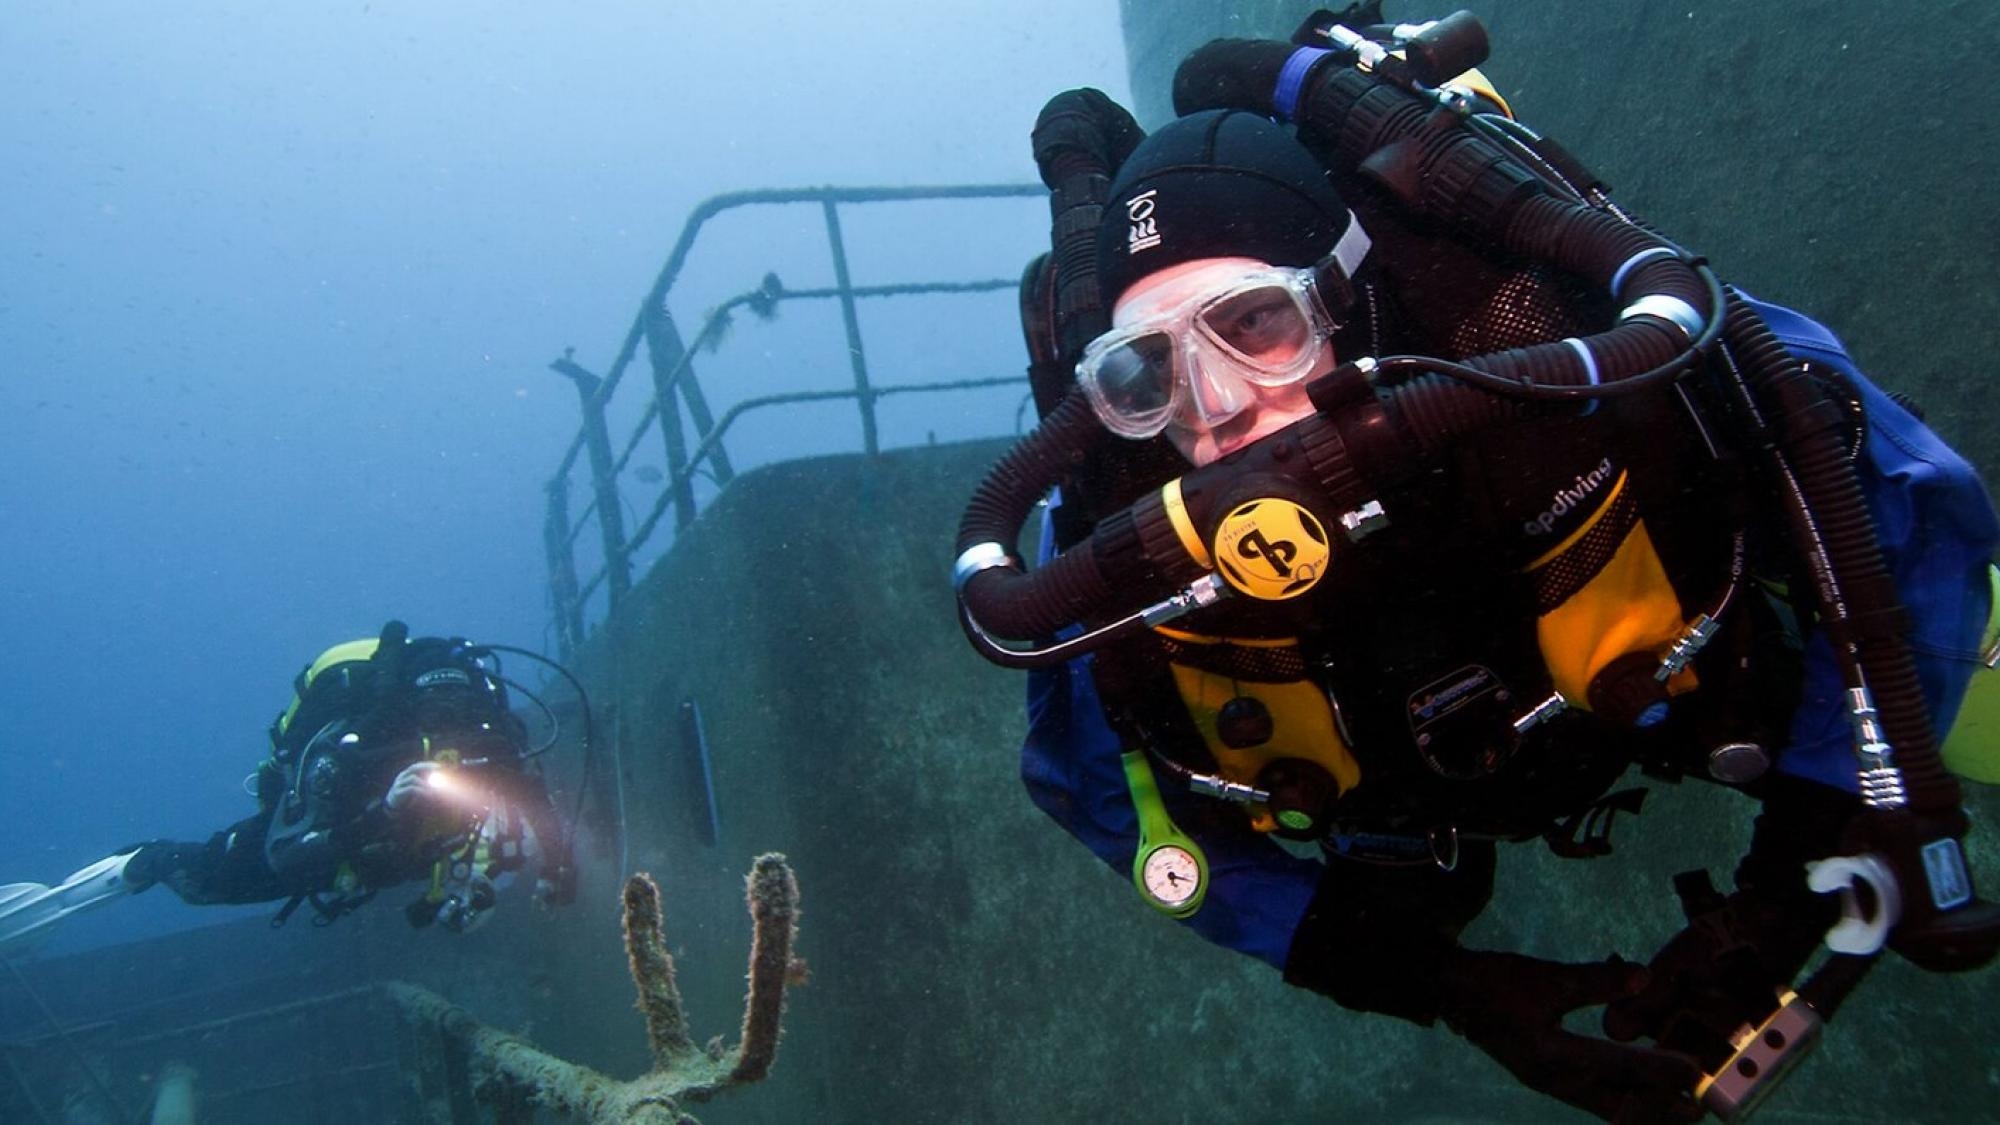 buceo con rebreather - dive buddies